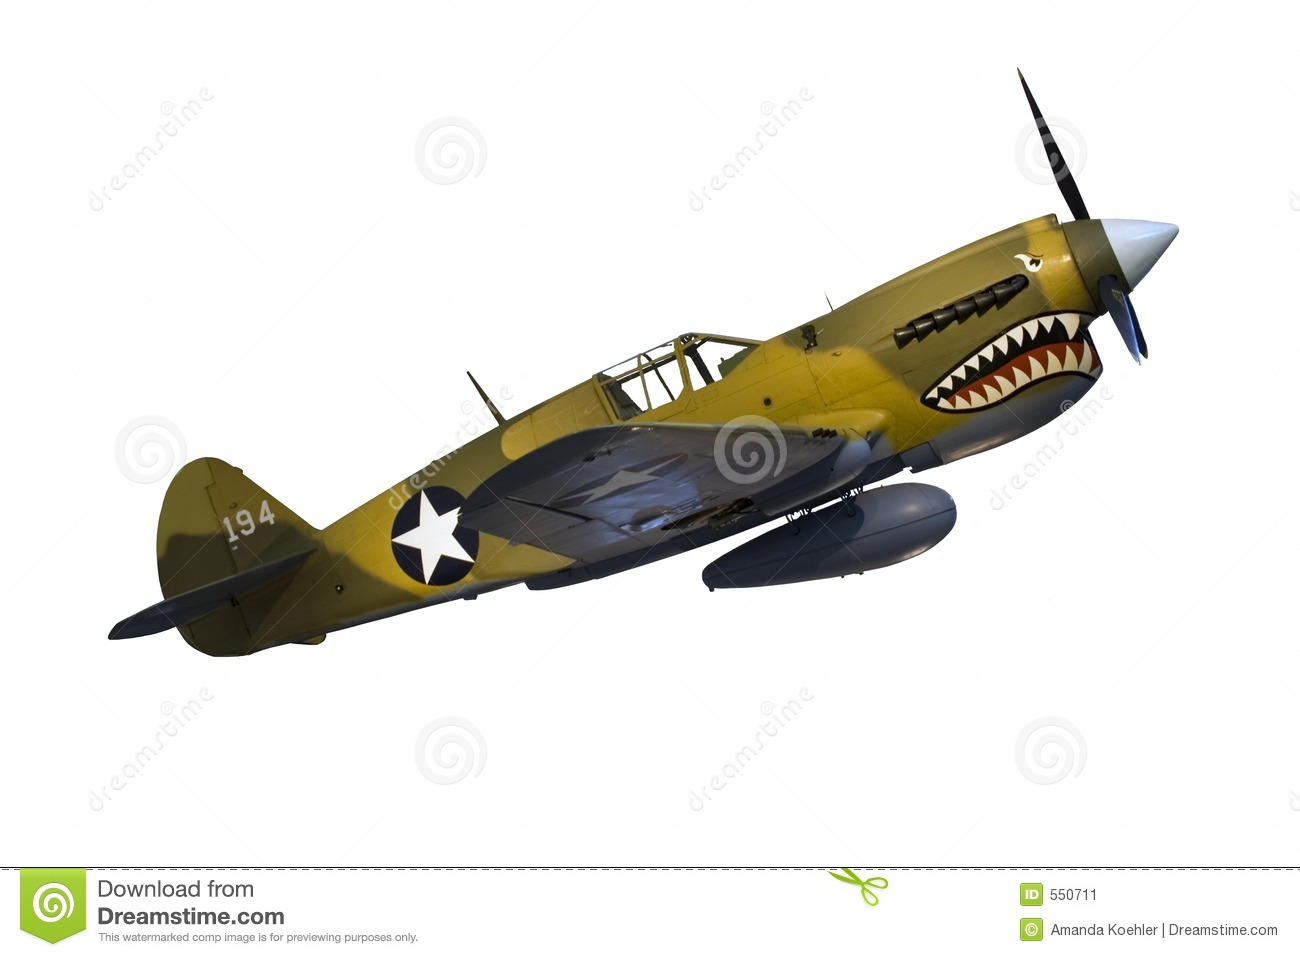 Aviation clipart aeroplan Clipart Military Military Vintage Download